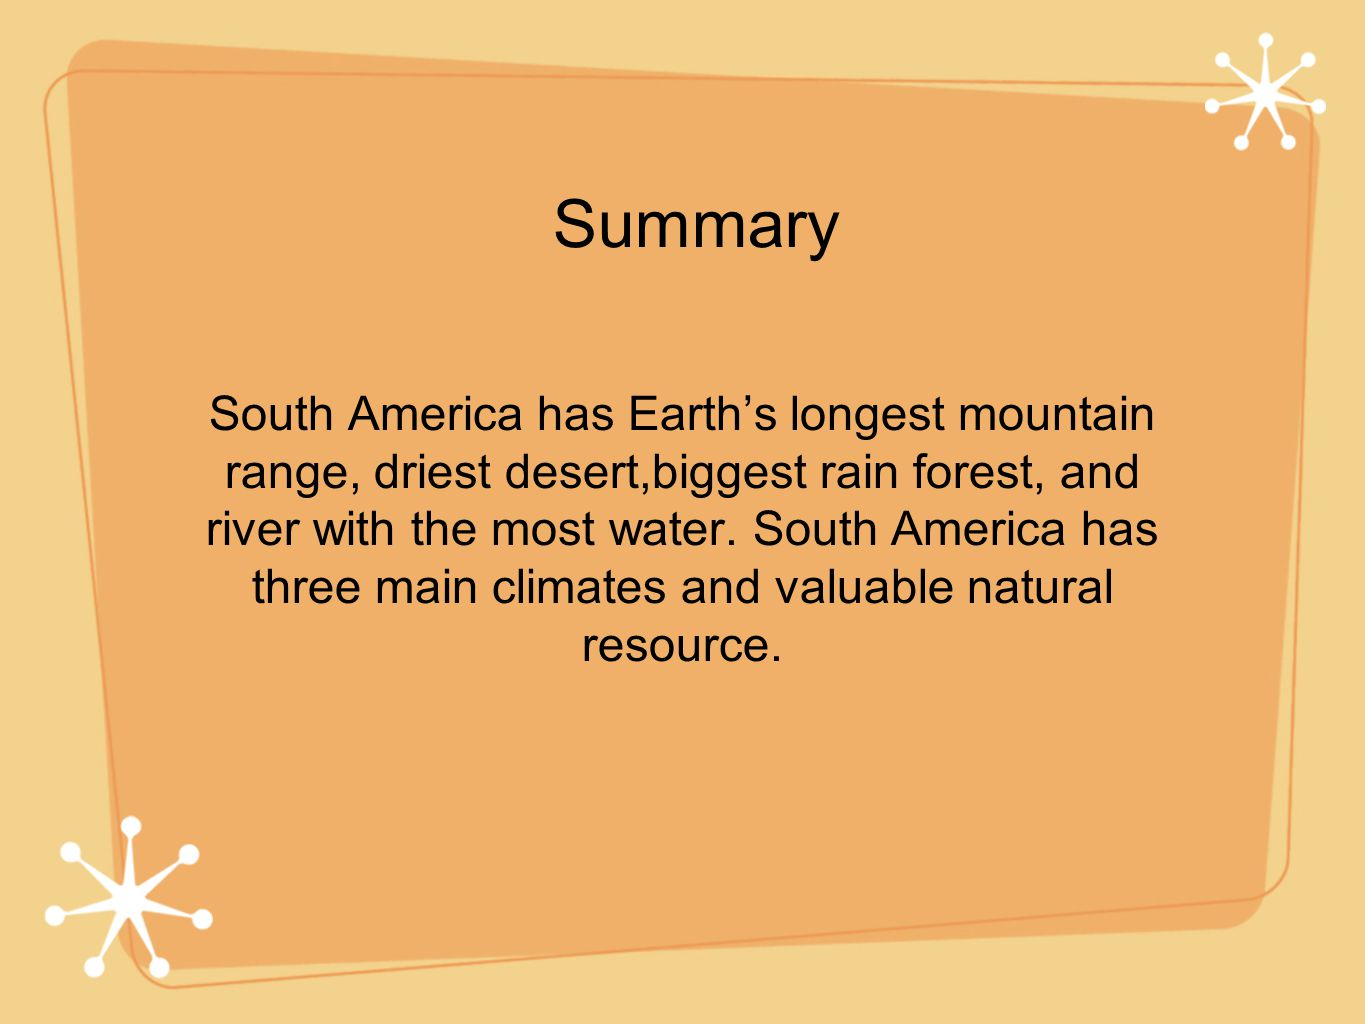 South America has Earth's longest mountain range, driest desert,biggest rain forest, and river with the most water.